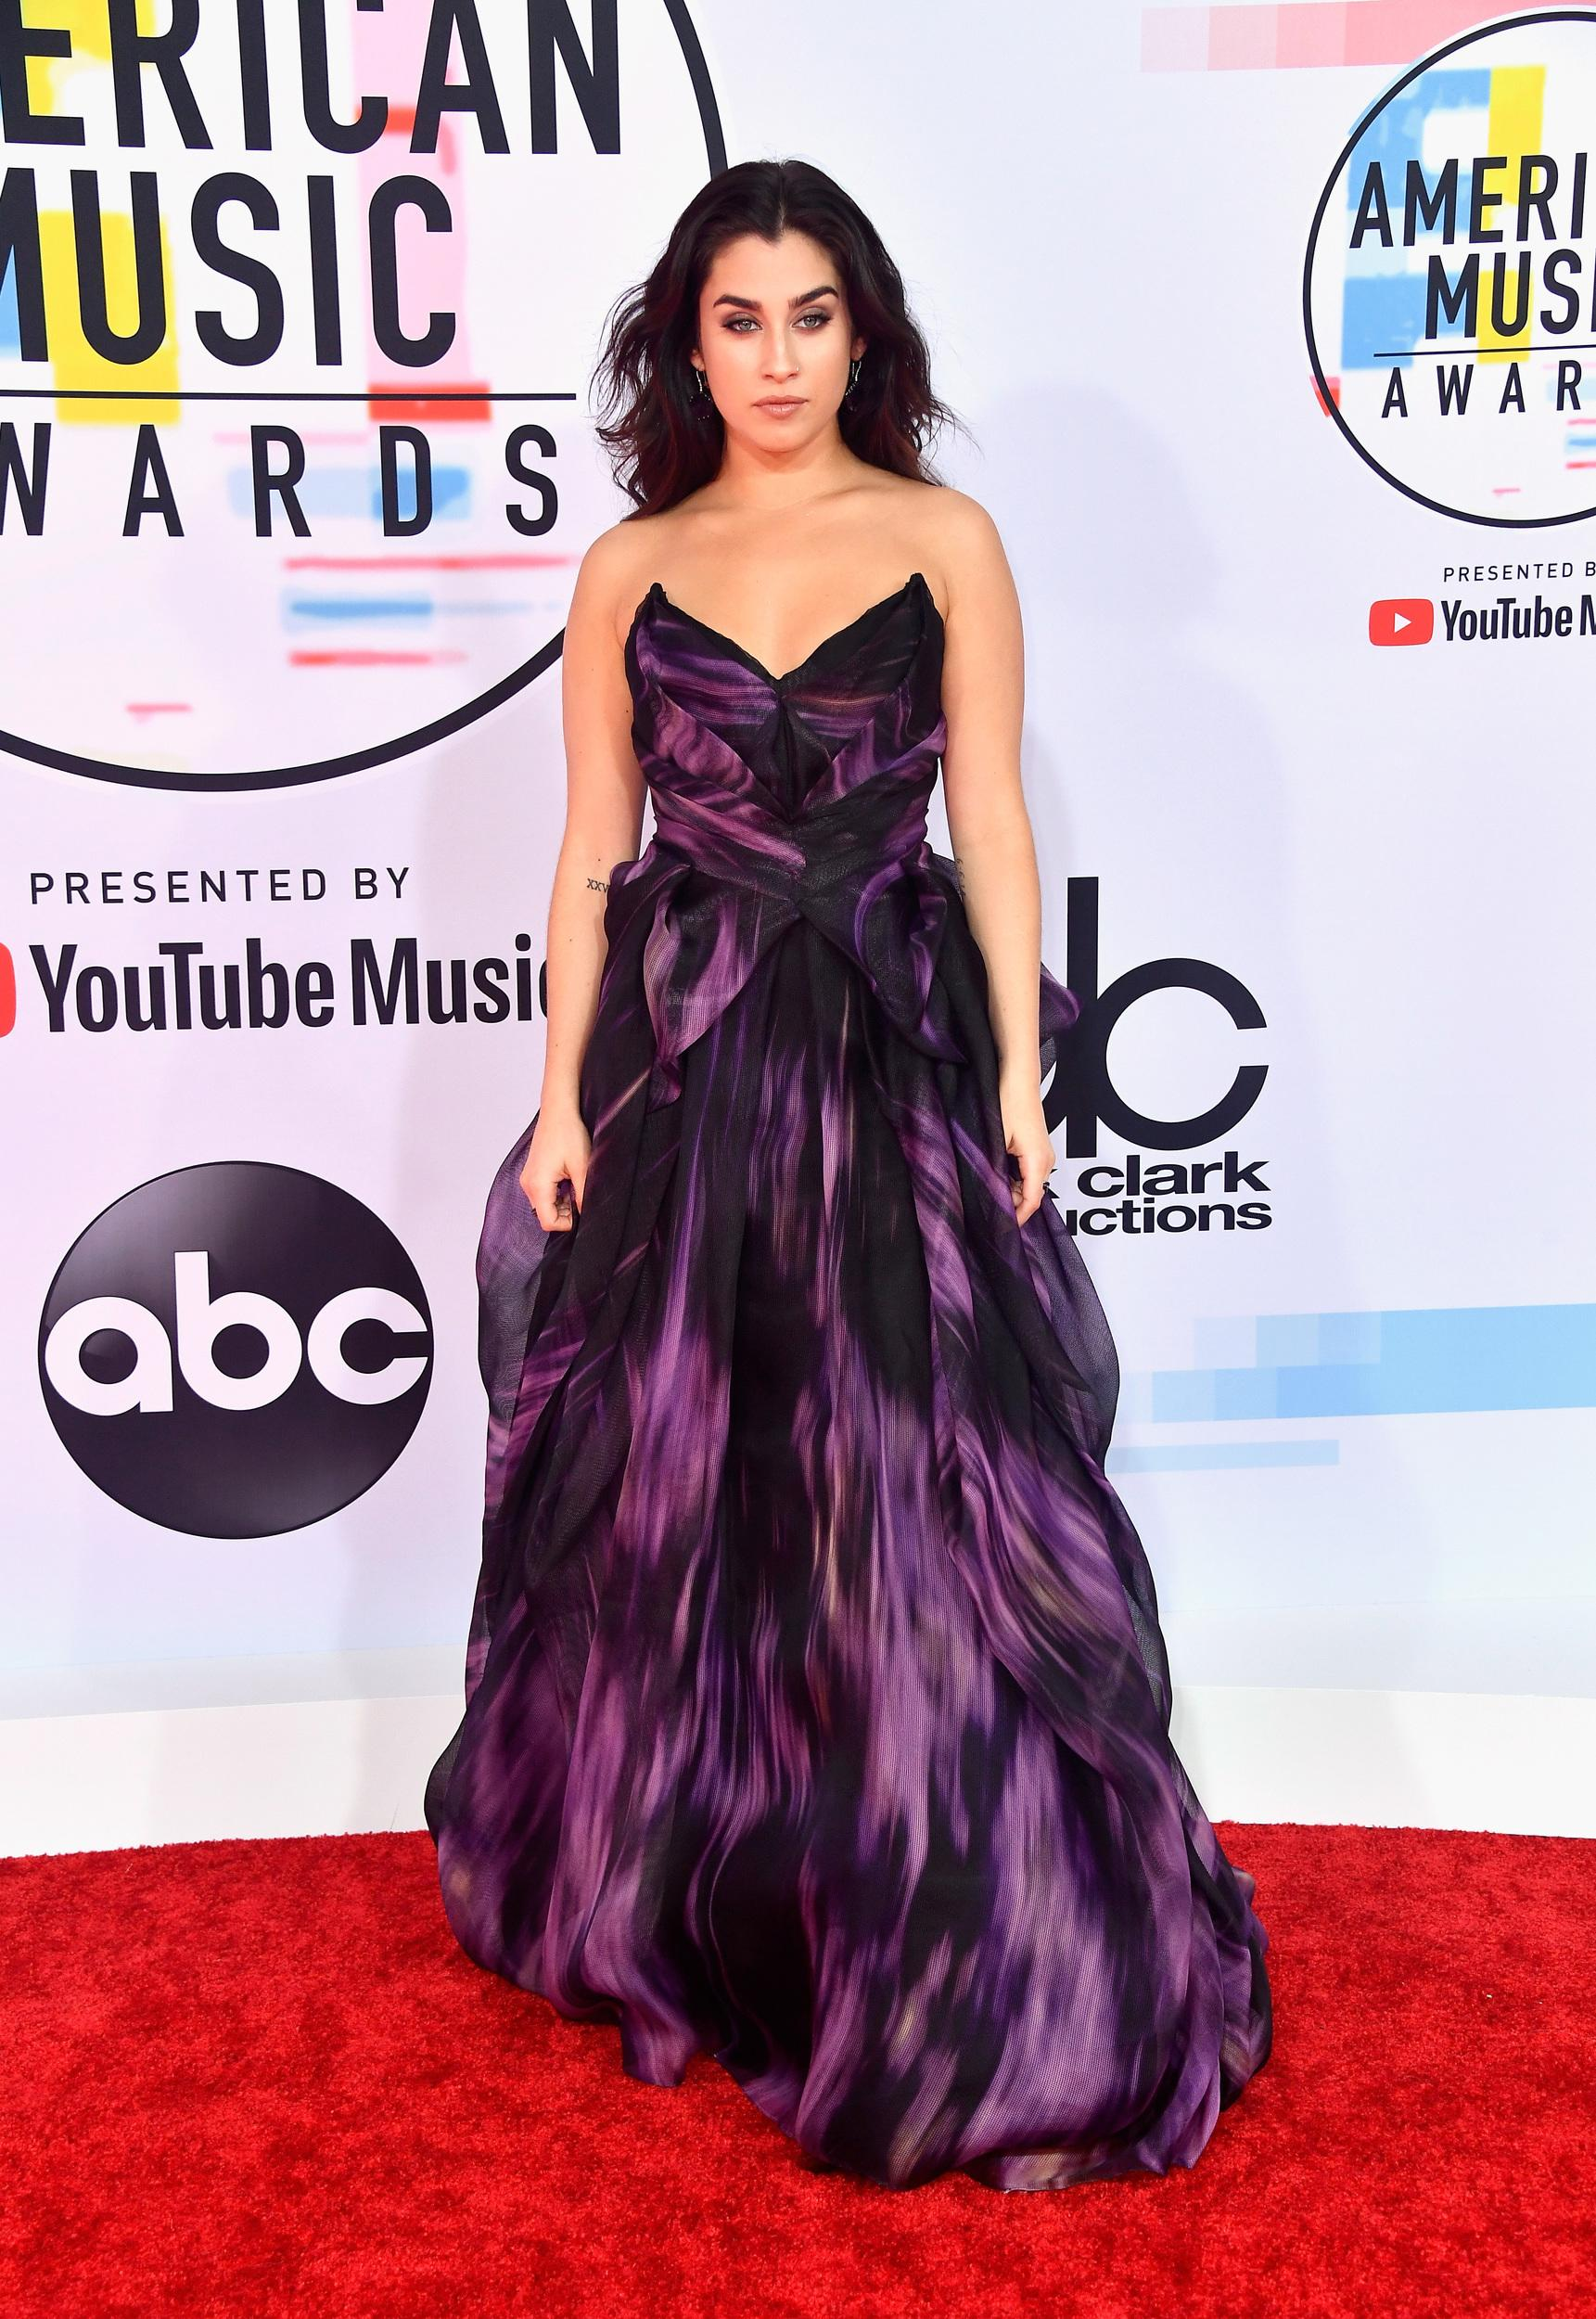 LOS ANGELES, CA - OCTOBER 09:  Lauren Jauregui attends the 2018 American Music Awards at Microsoft Theater on October 9, 2018 in Los Angeles, California.  (Photo by Frazer Harrison/Getty Images)